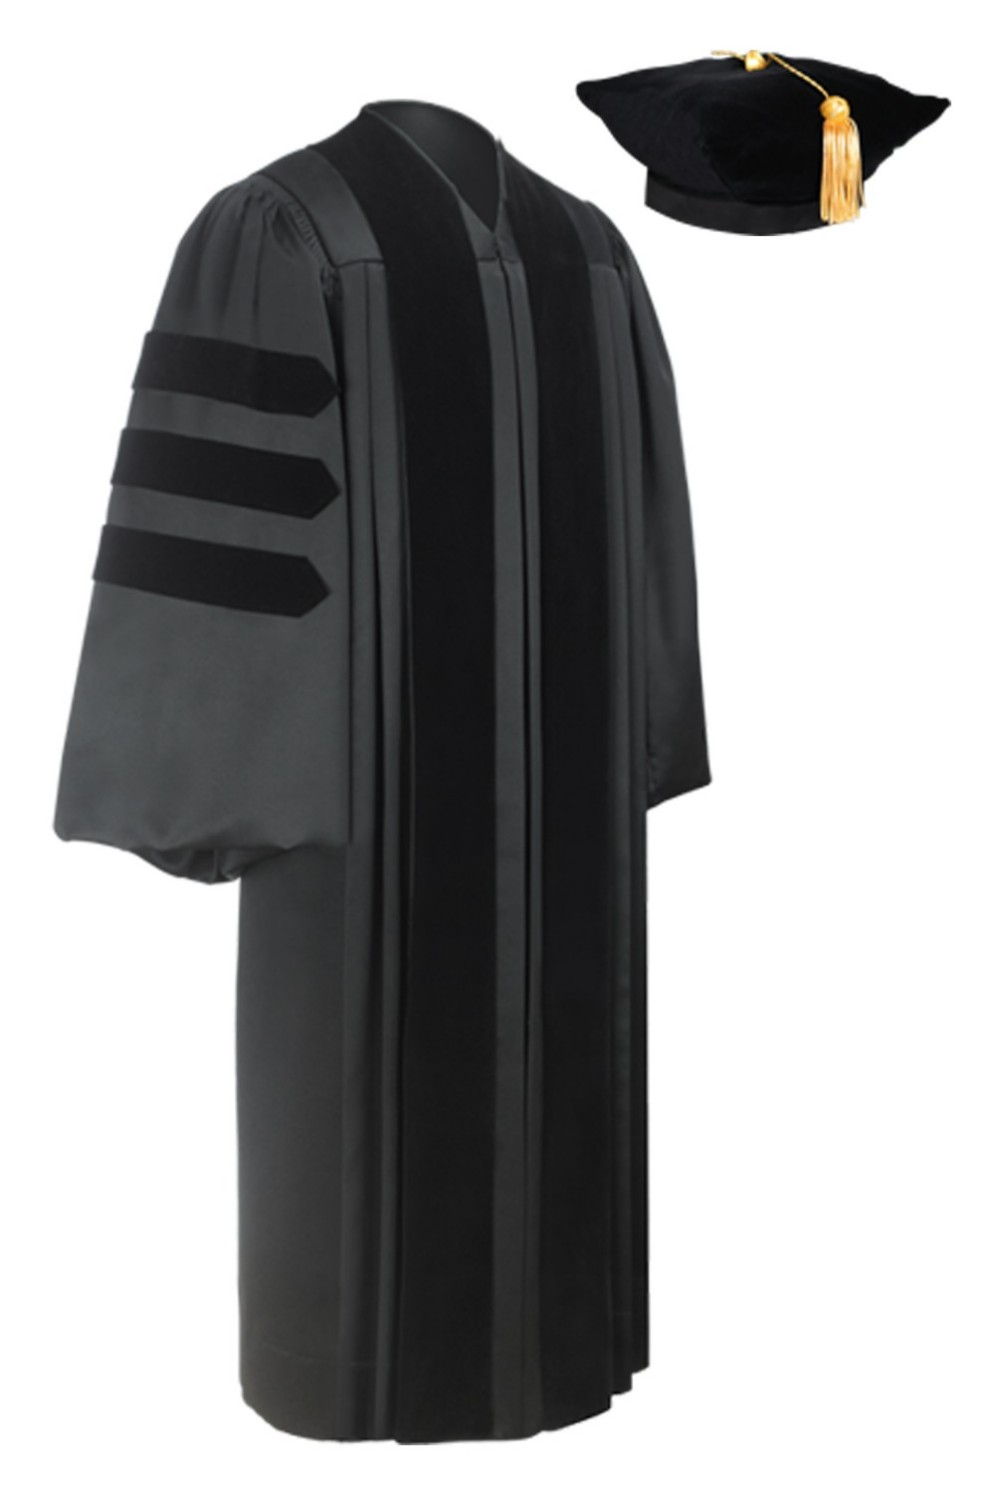 doctoral gown tam.jpg